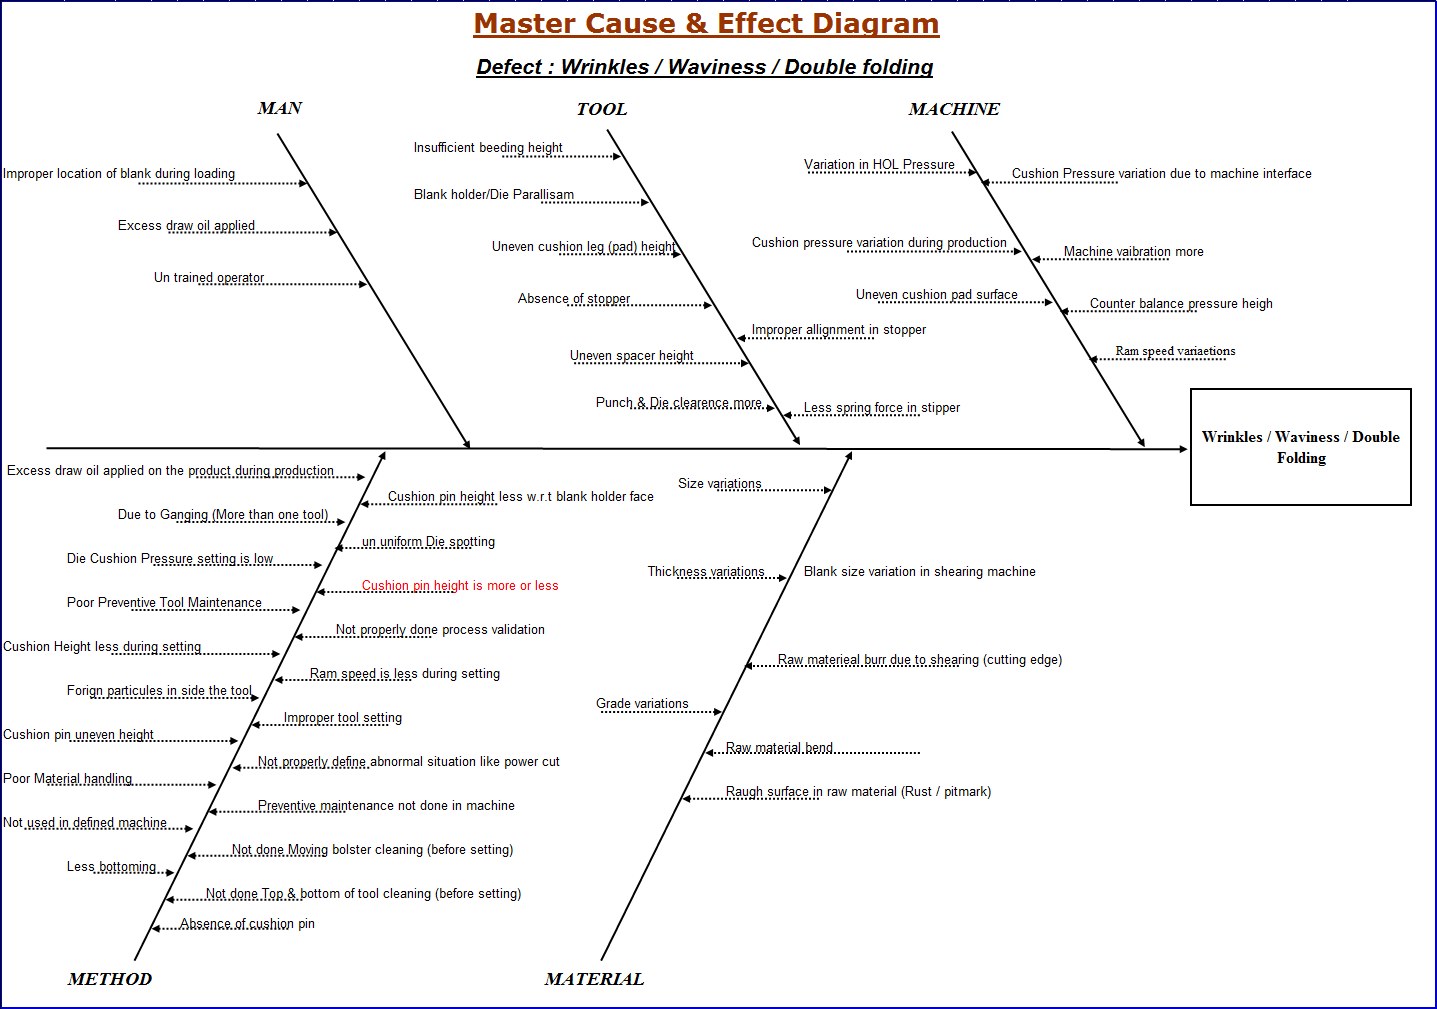 causes and effect diagrams in quality management The quality management system (qms) and risk in the supply chain, as a  principle part of the  utilize quality management tools for cause and effect  analysis.